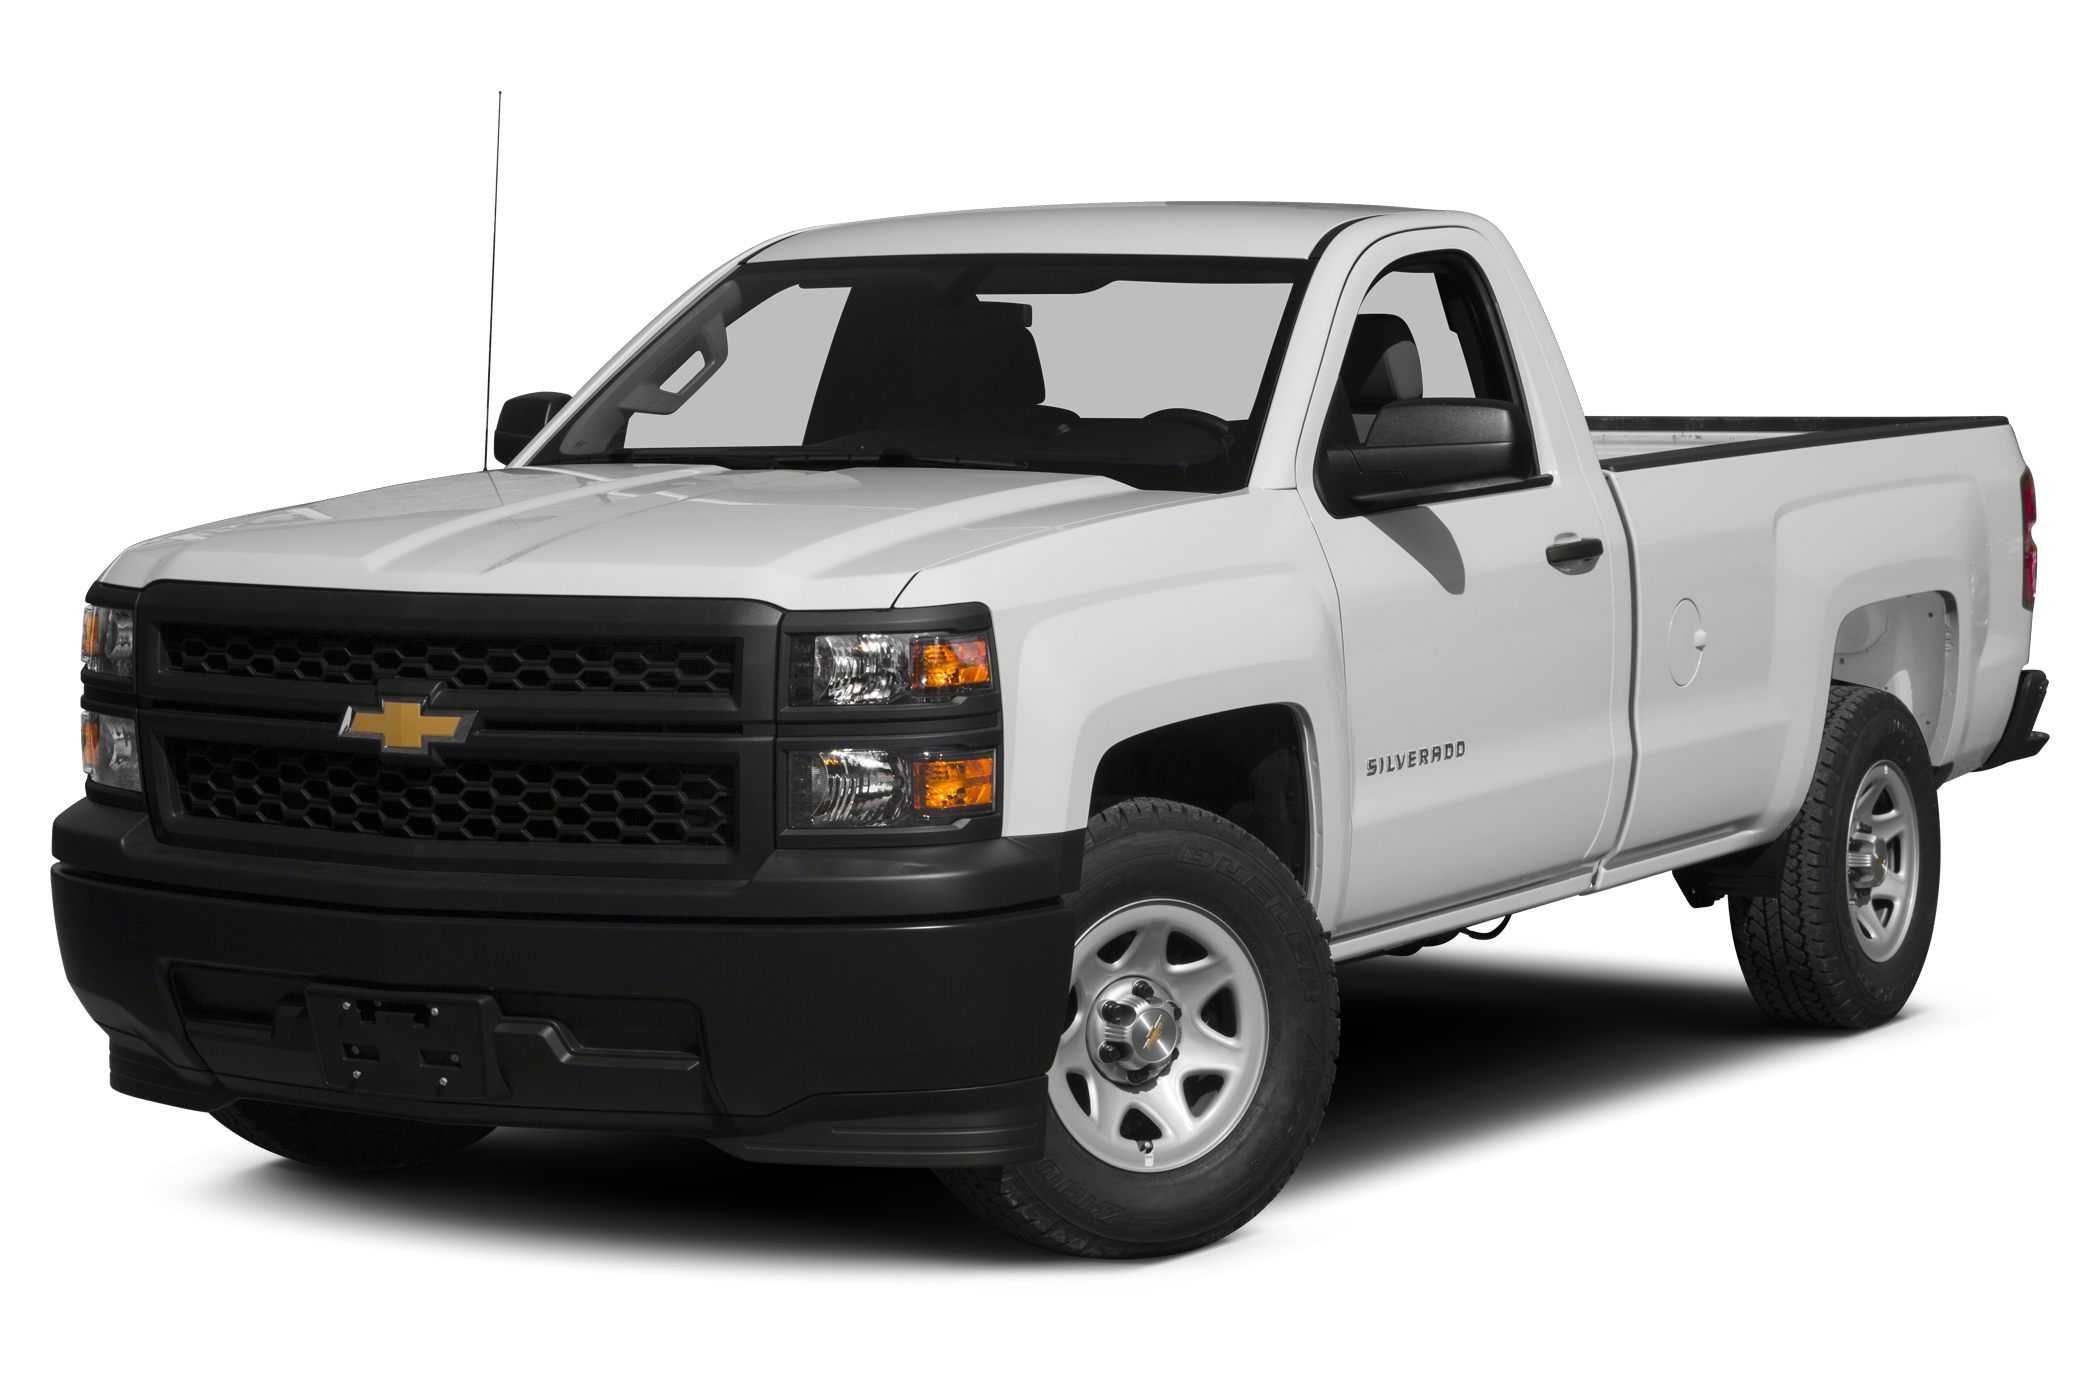 2015 Chevrolet Silverado 1500 1LT Extended Cab Pickup for sale in Daphne for $41,410 with 9 miles